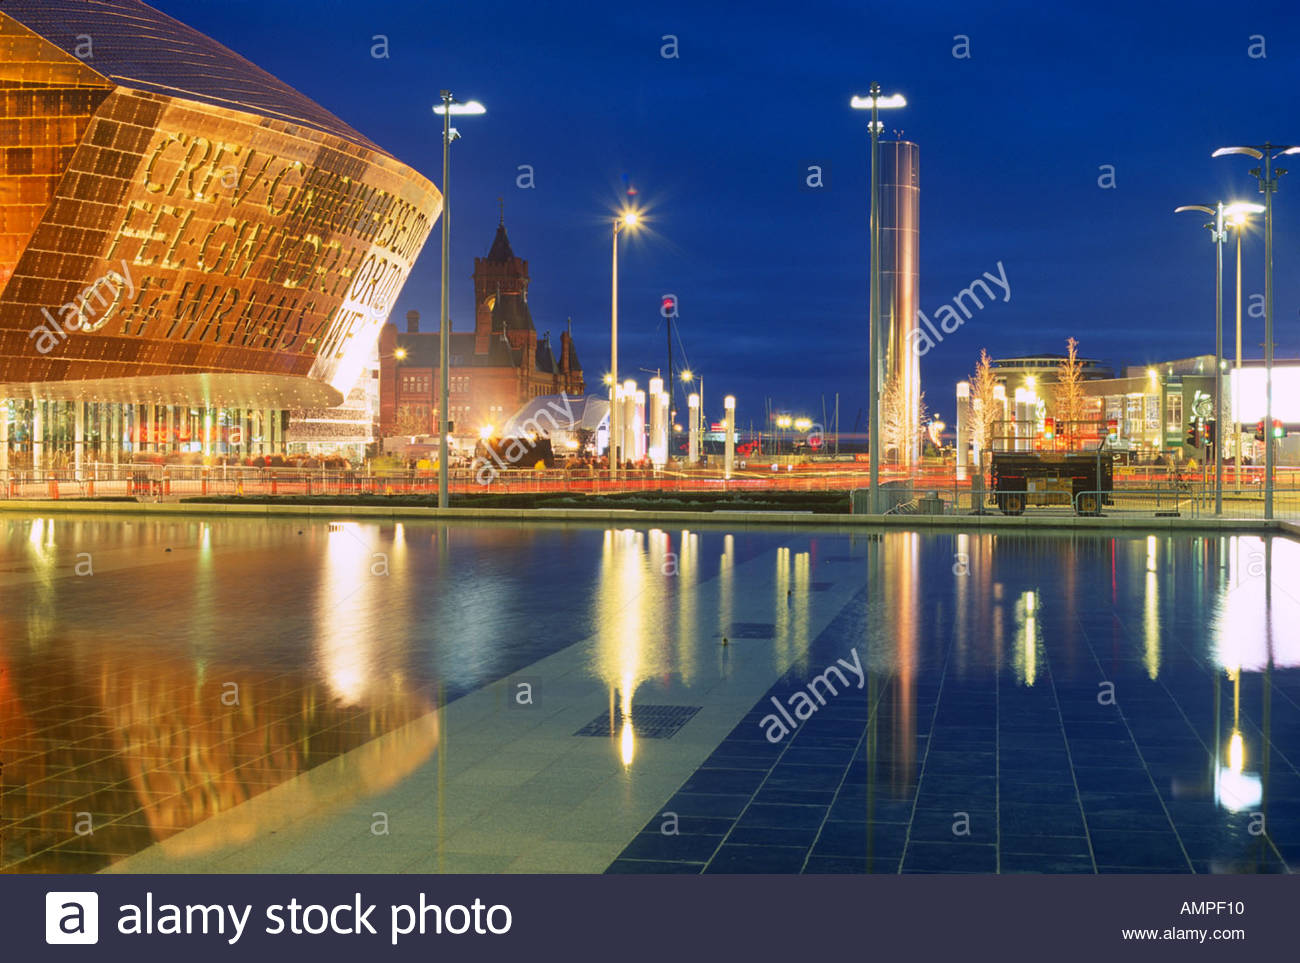 Cardiff Bay South Wales, Wales Millennium Stadium Cardiff Bay South Wales Stock Photo ...